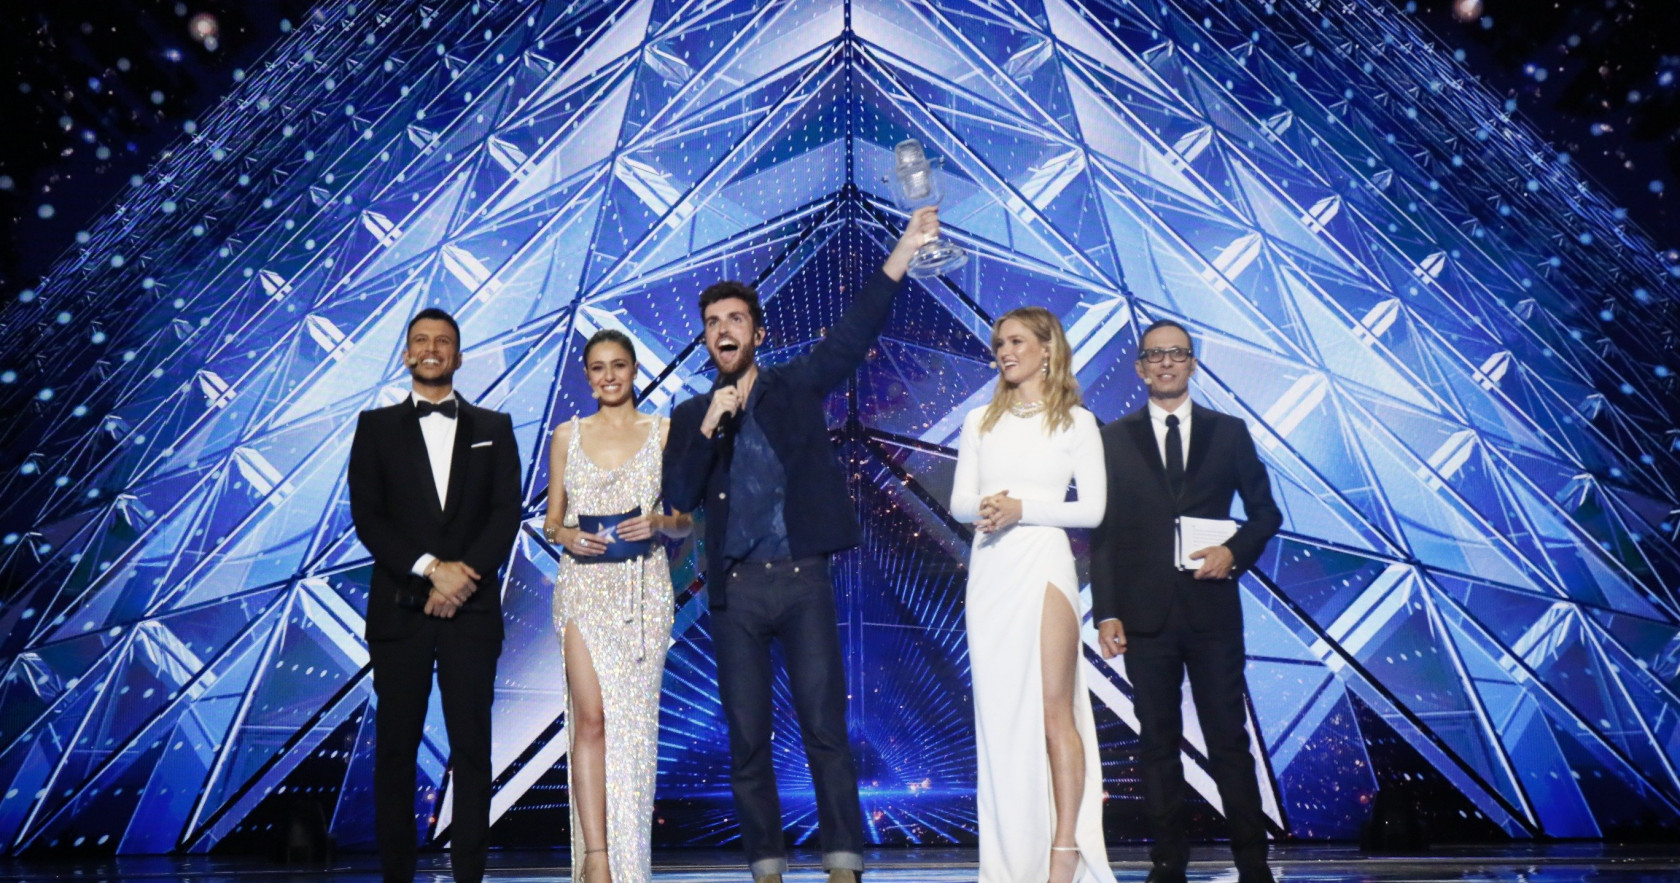 Erez Tal, Lucy Ayoub, Duncan Laurence, Assi Azar, and Bar Refaeli in Eurovision Song Contest Tel Aviv 2019 (2019)